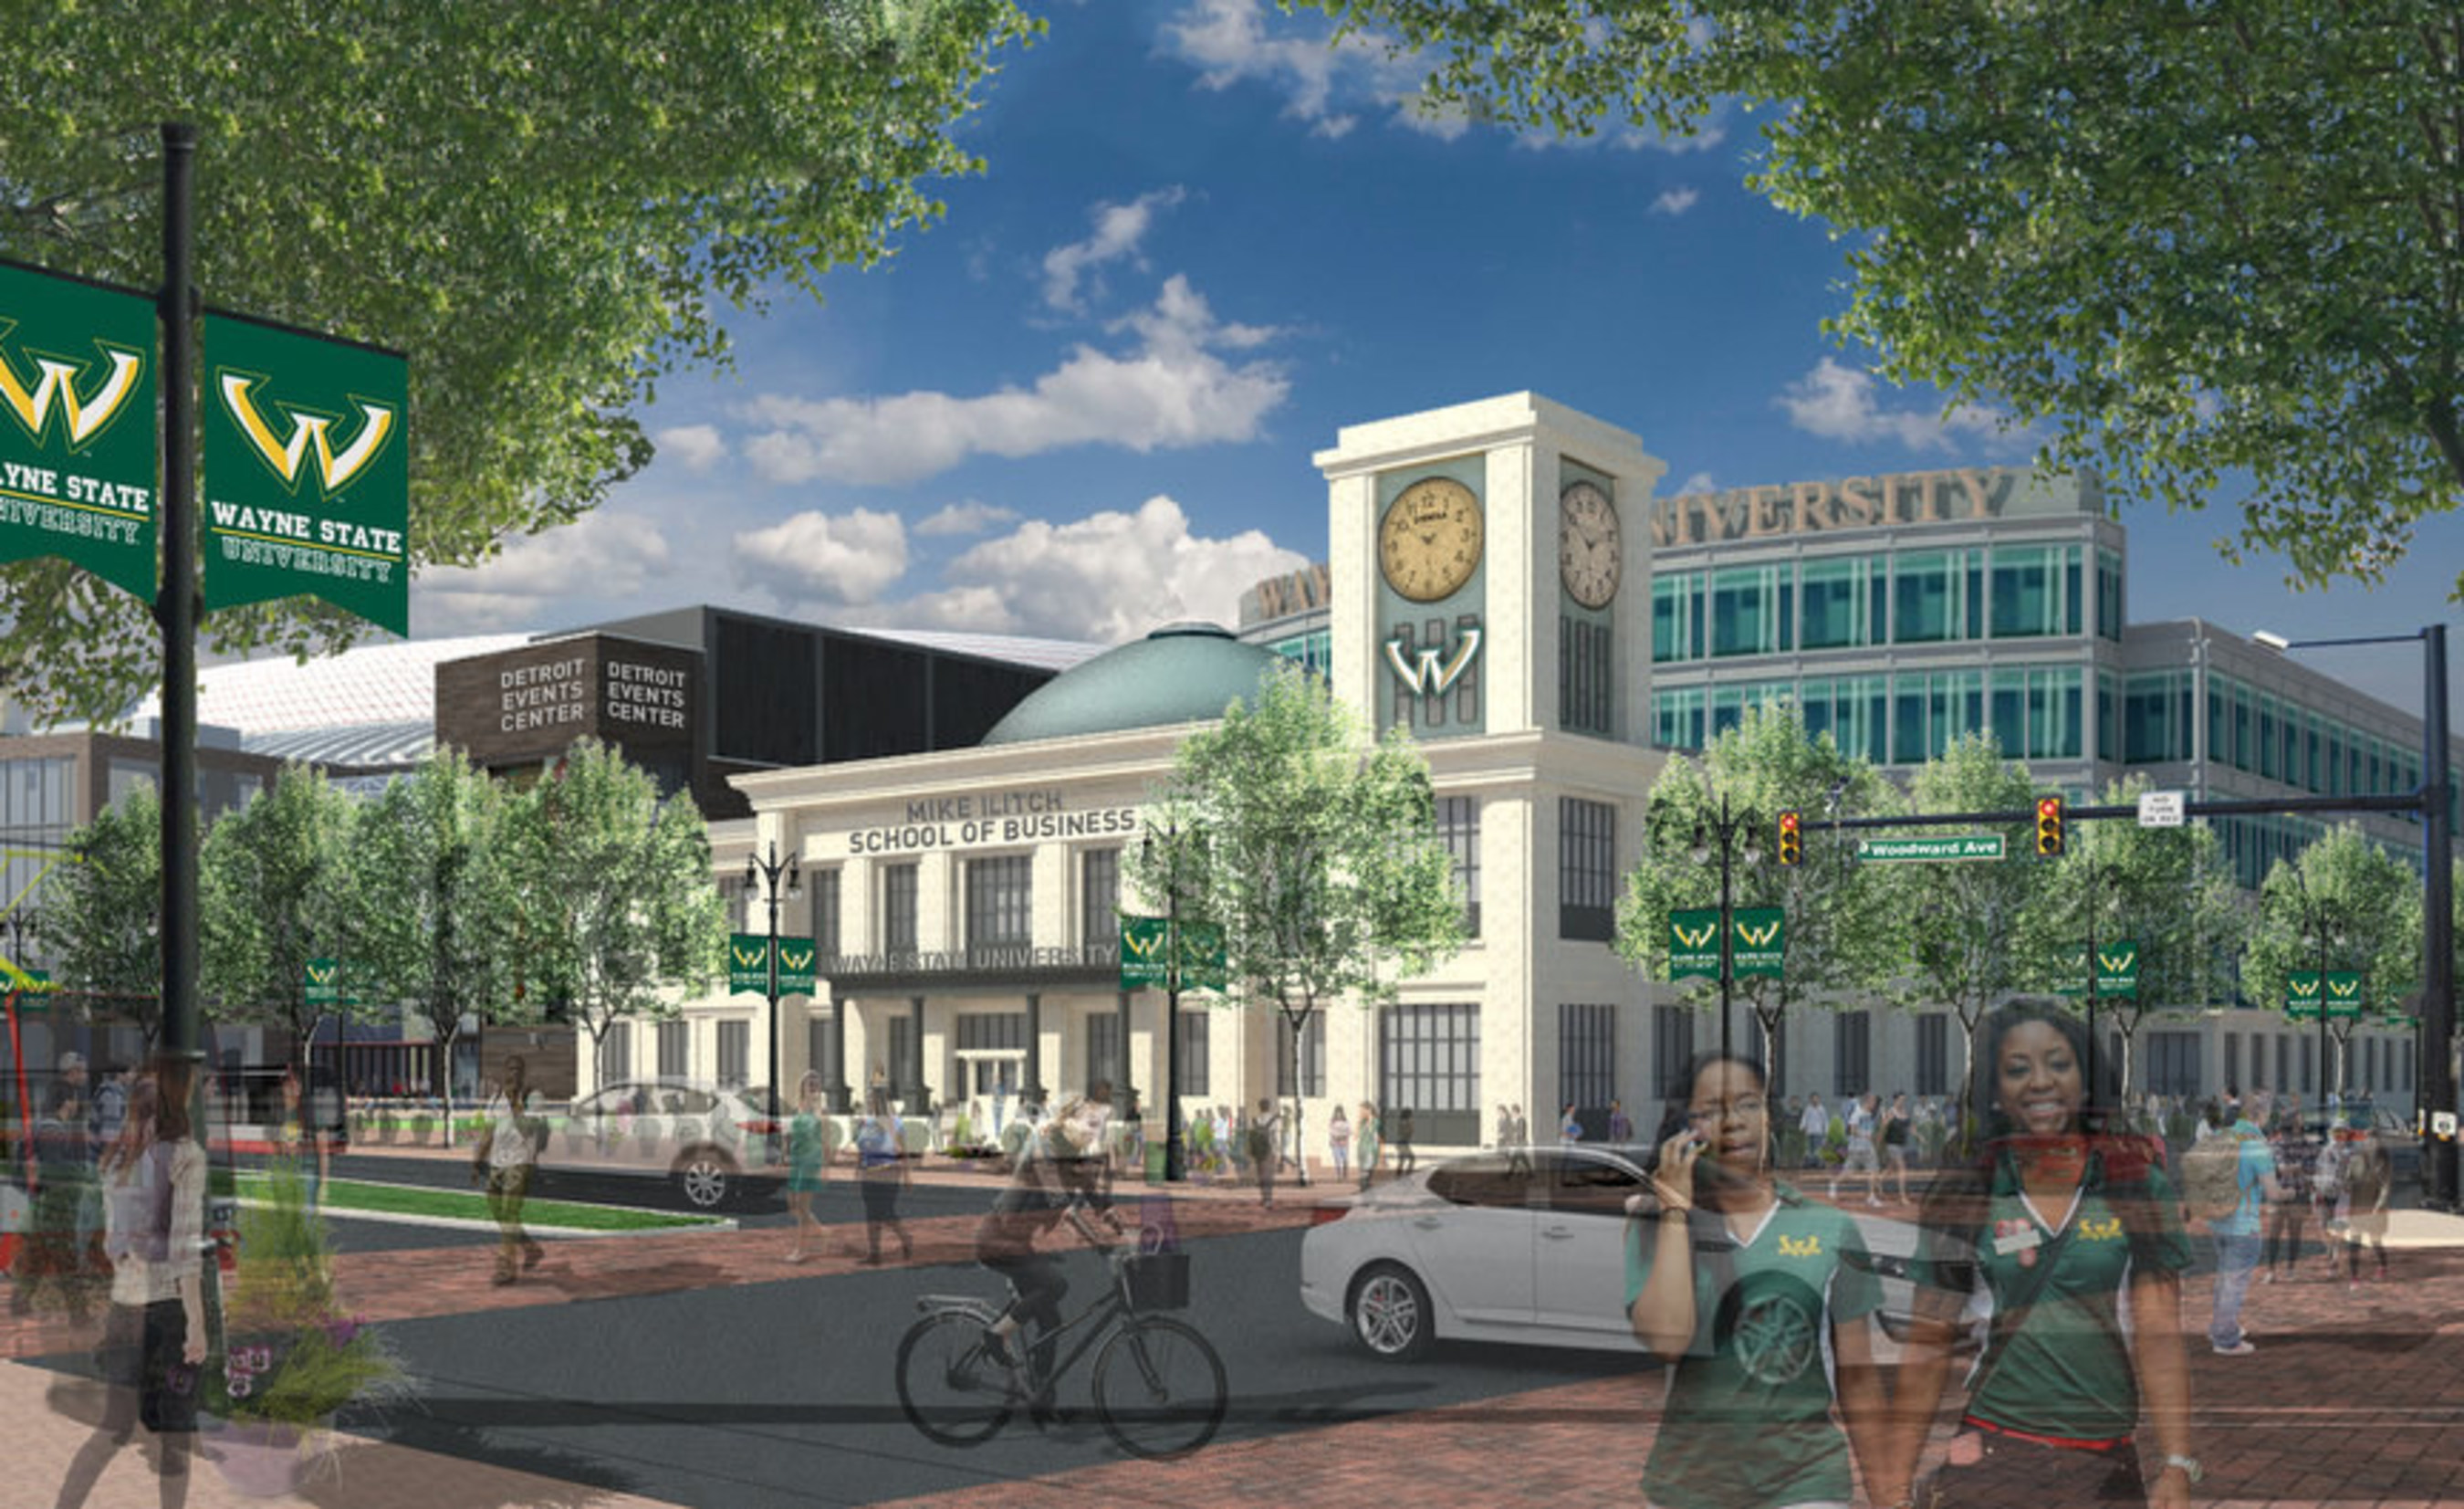 UMD Applauds Ilitch Family's Transformational $40 Million Leadership Gift to Wayne State University